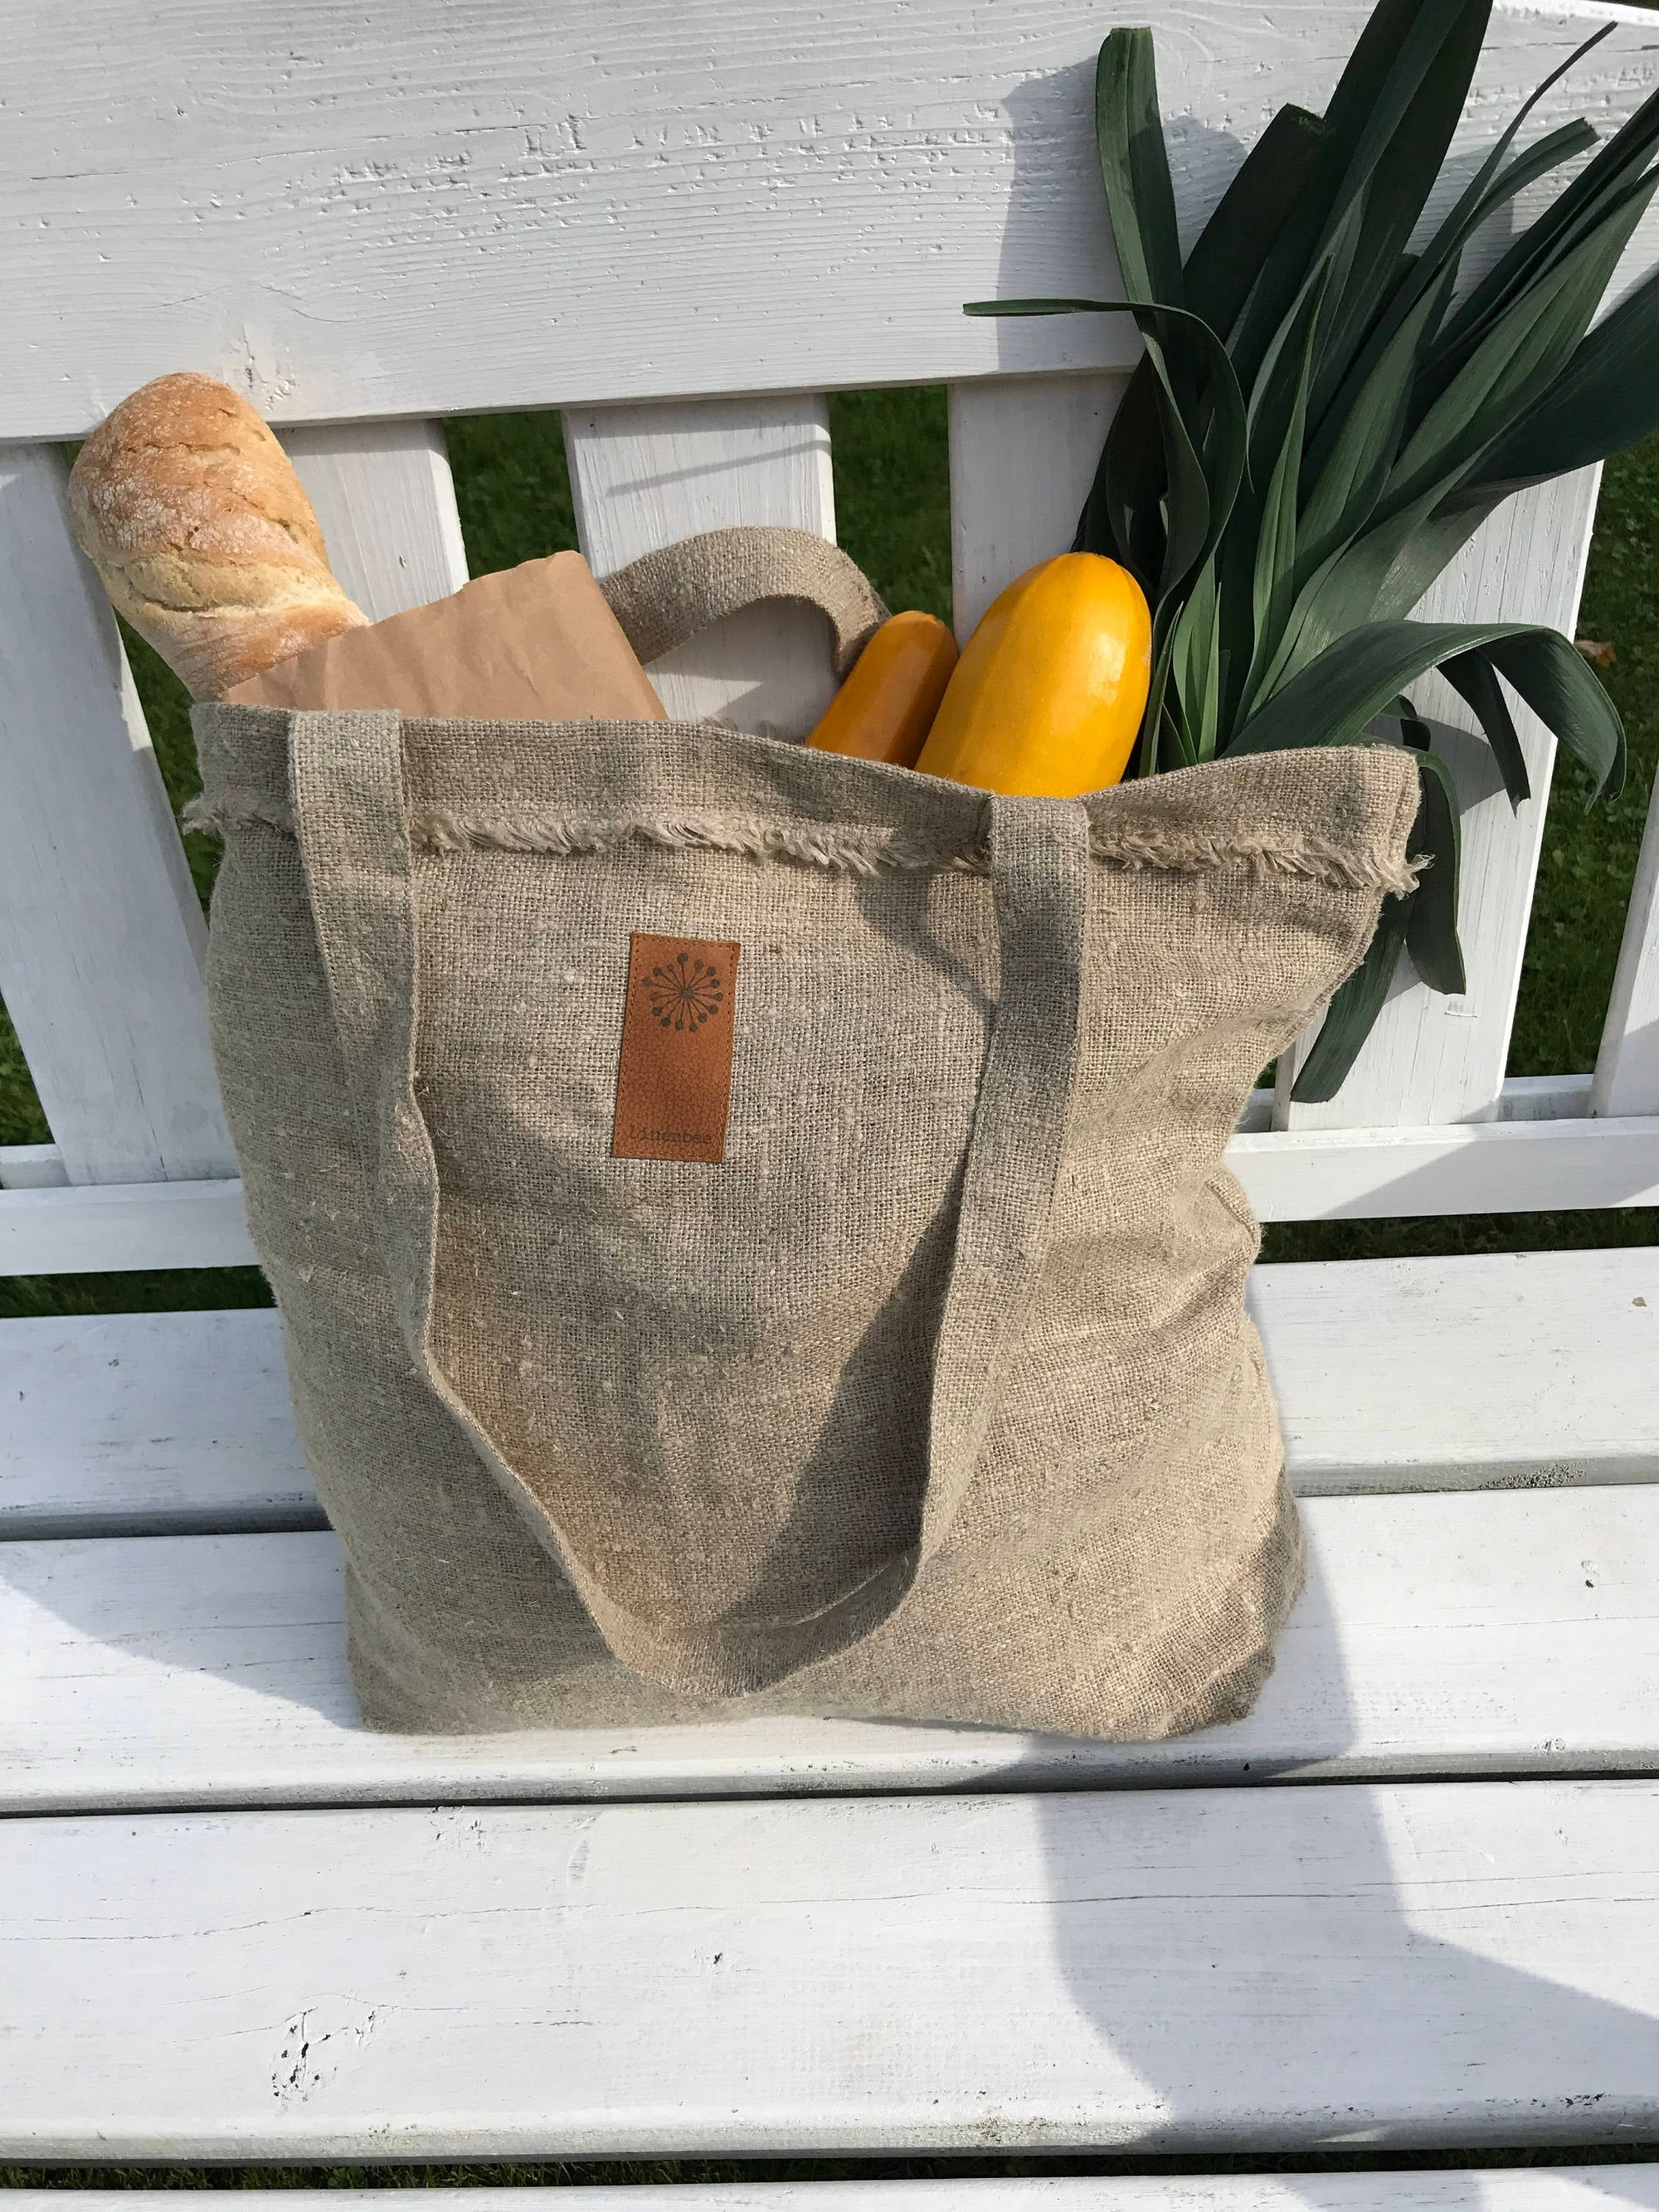 Burlap Shopping Bag, Rustic Linen Tote Bag, Natural Linen Canvas Tote Bag, Linen Handbag, Fabric Handbag, Shoulder bag, Grey Brown Handbag